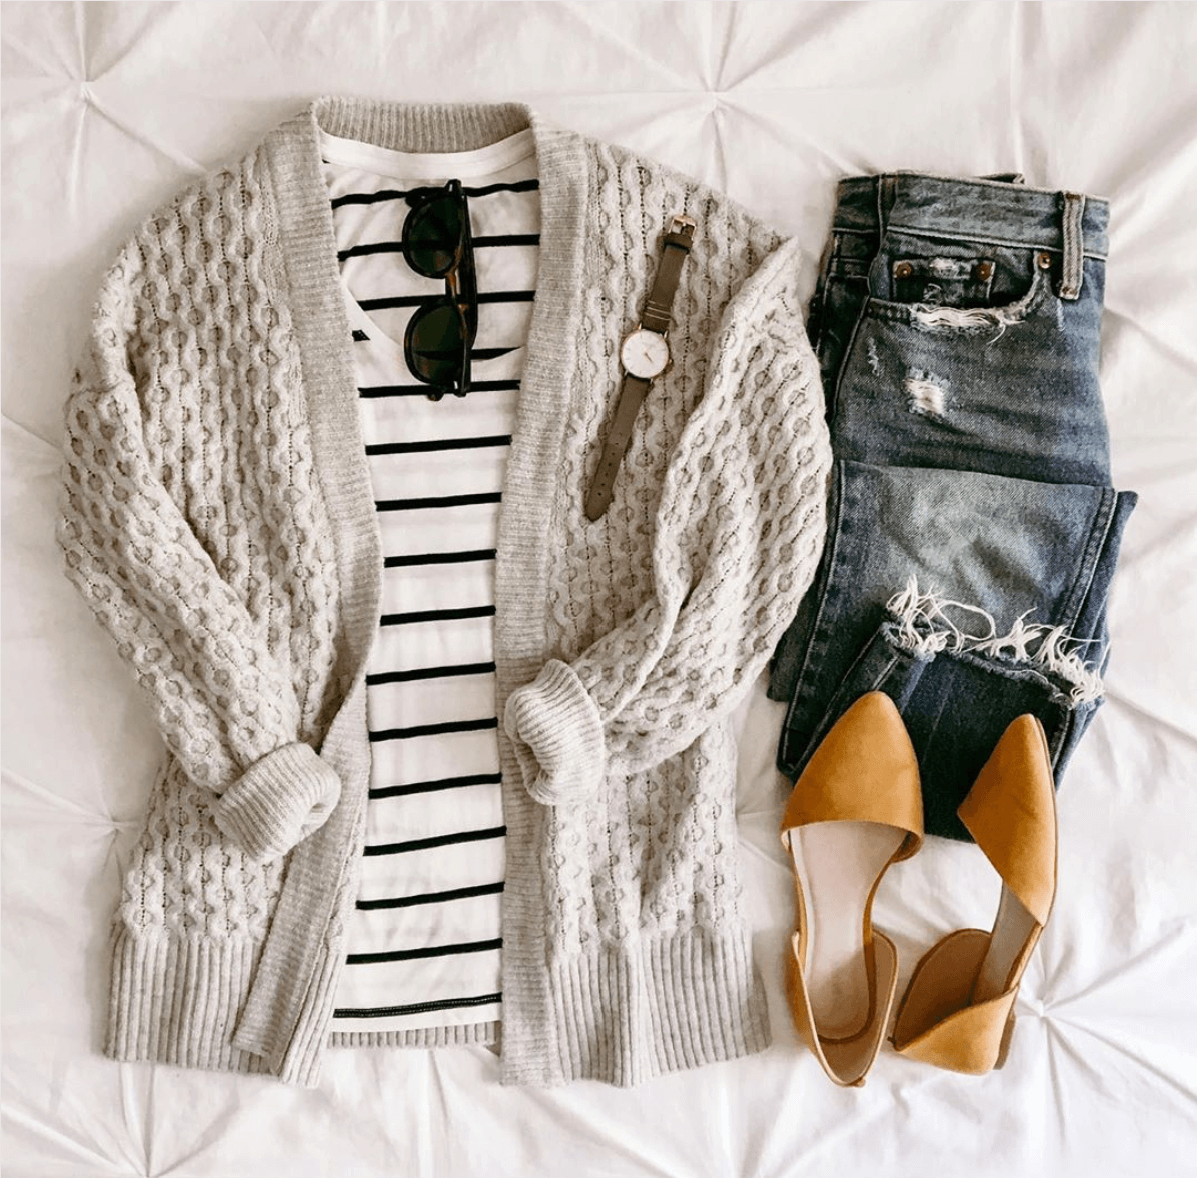 Cardigan Outfits Perfect For Fall and Winter! | thezenish.com